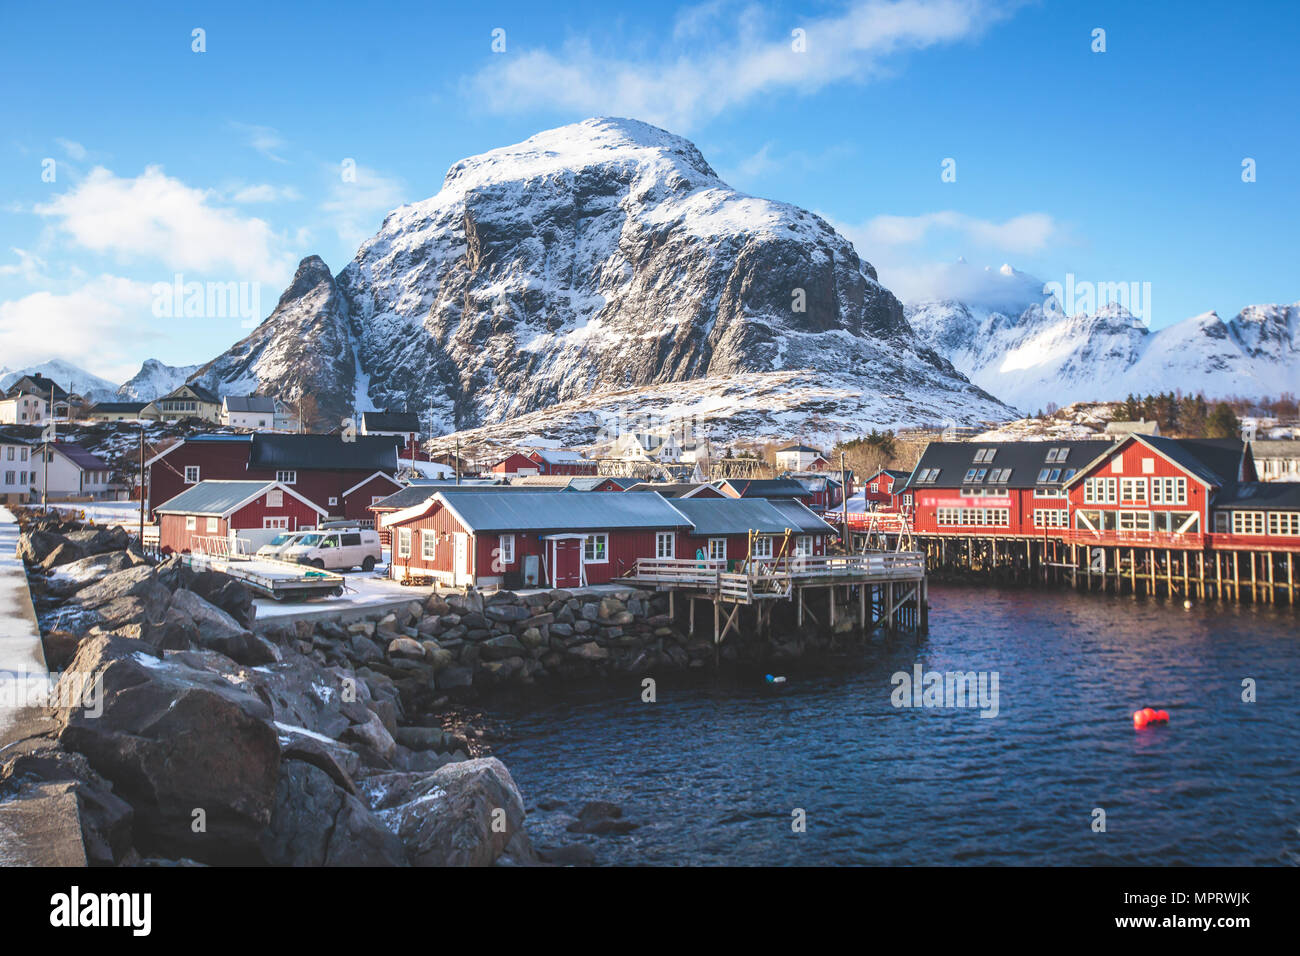 Beautiful super wide-angle winter snowy view of fishing village A, Norway, Lofoten Islands, with skyline, mountains, famous fishing village with red f - Stock Image